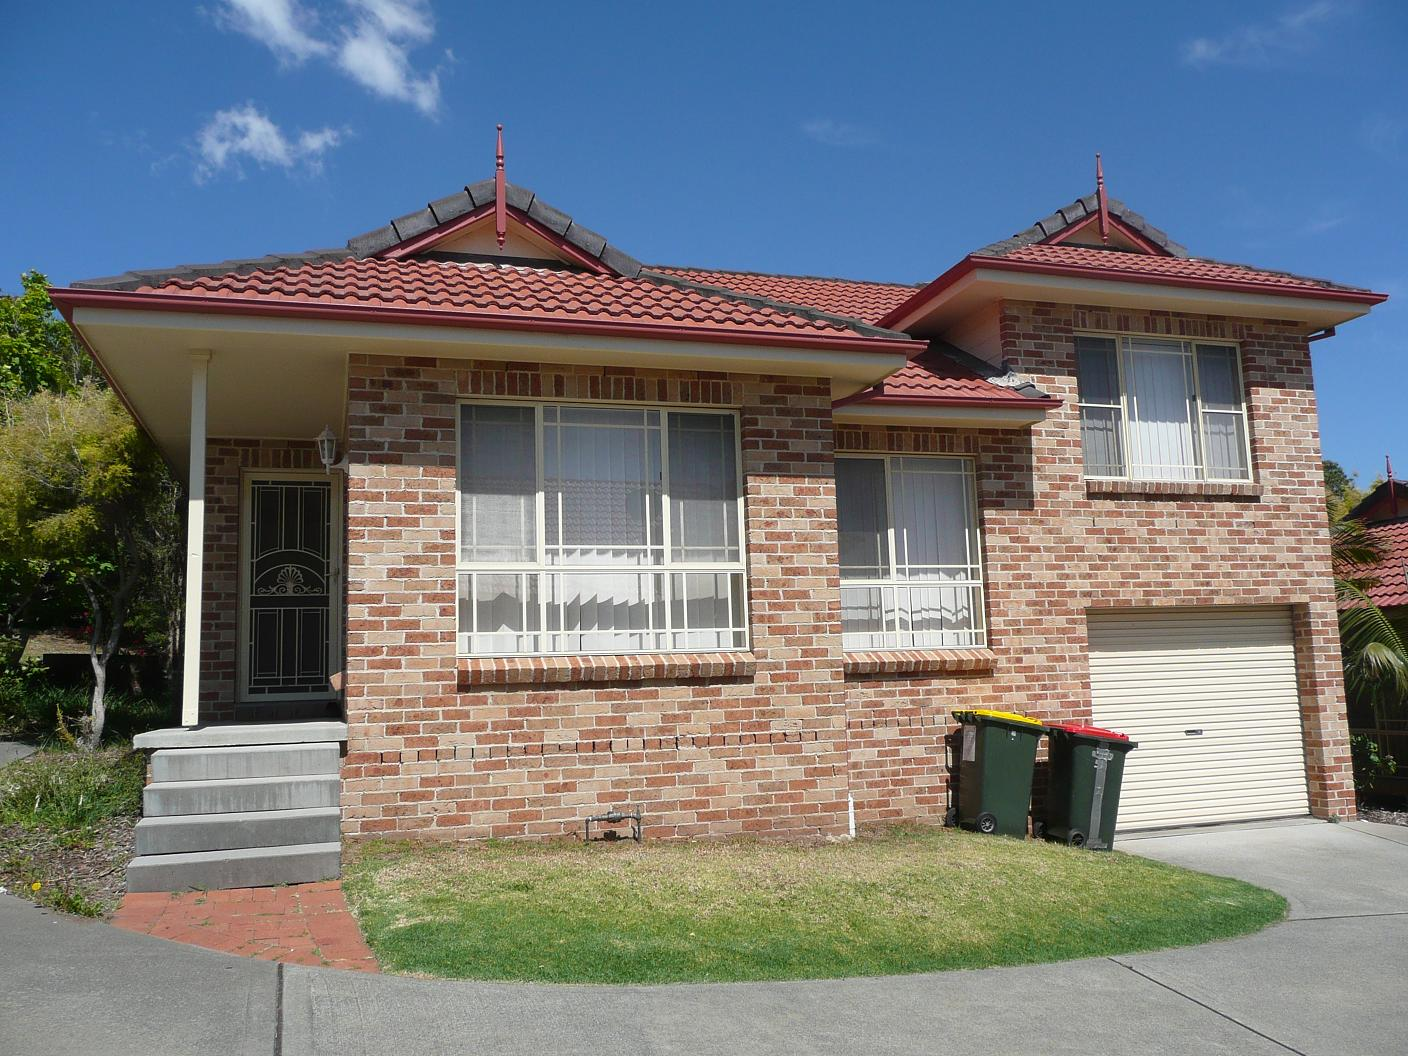 OPEN FOR INSPECTION TUESDAY 2nd APRIL @ 4:00PM